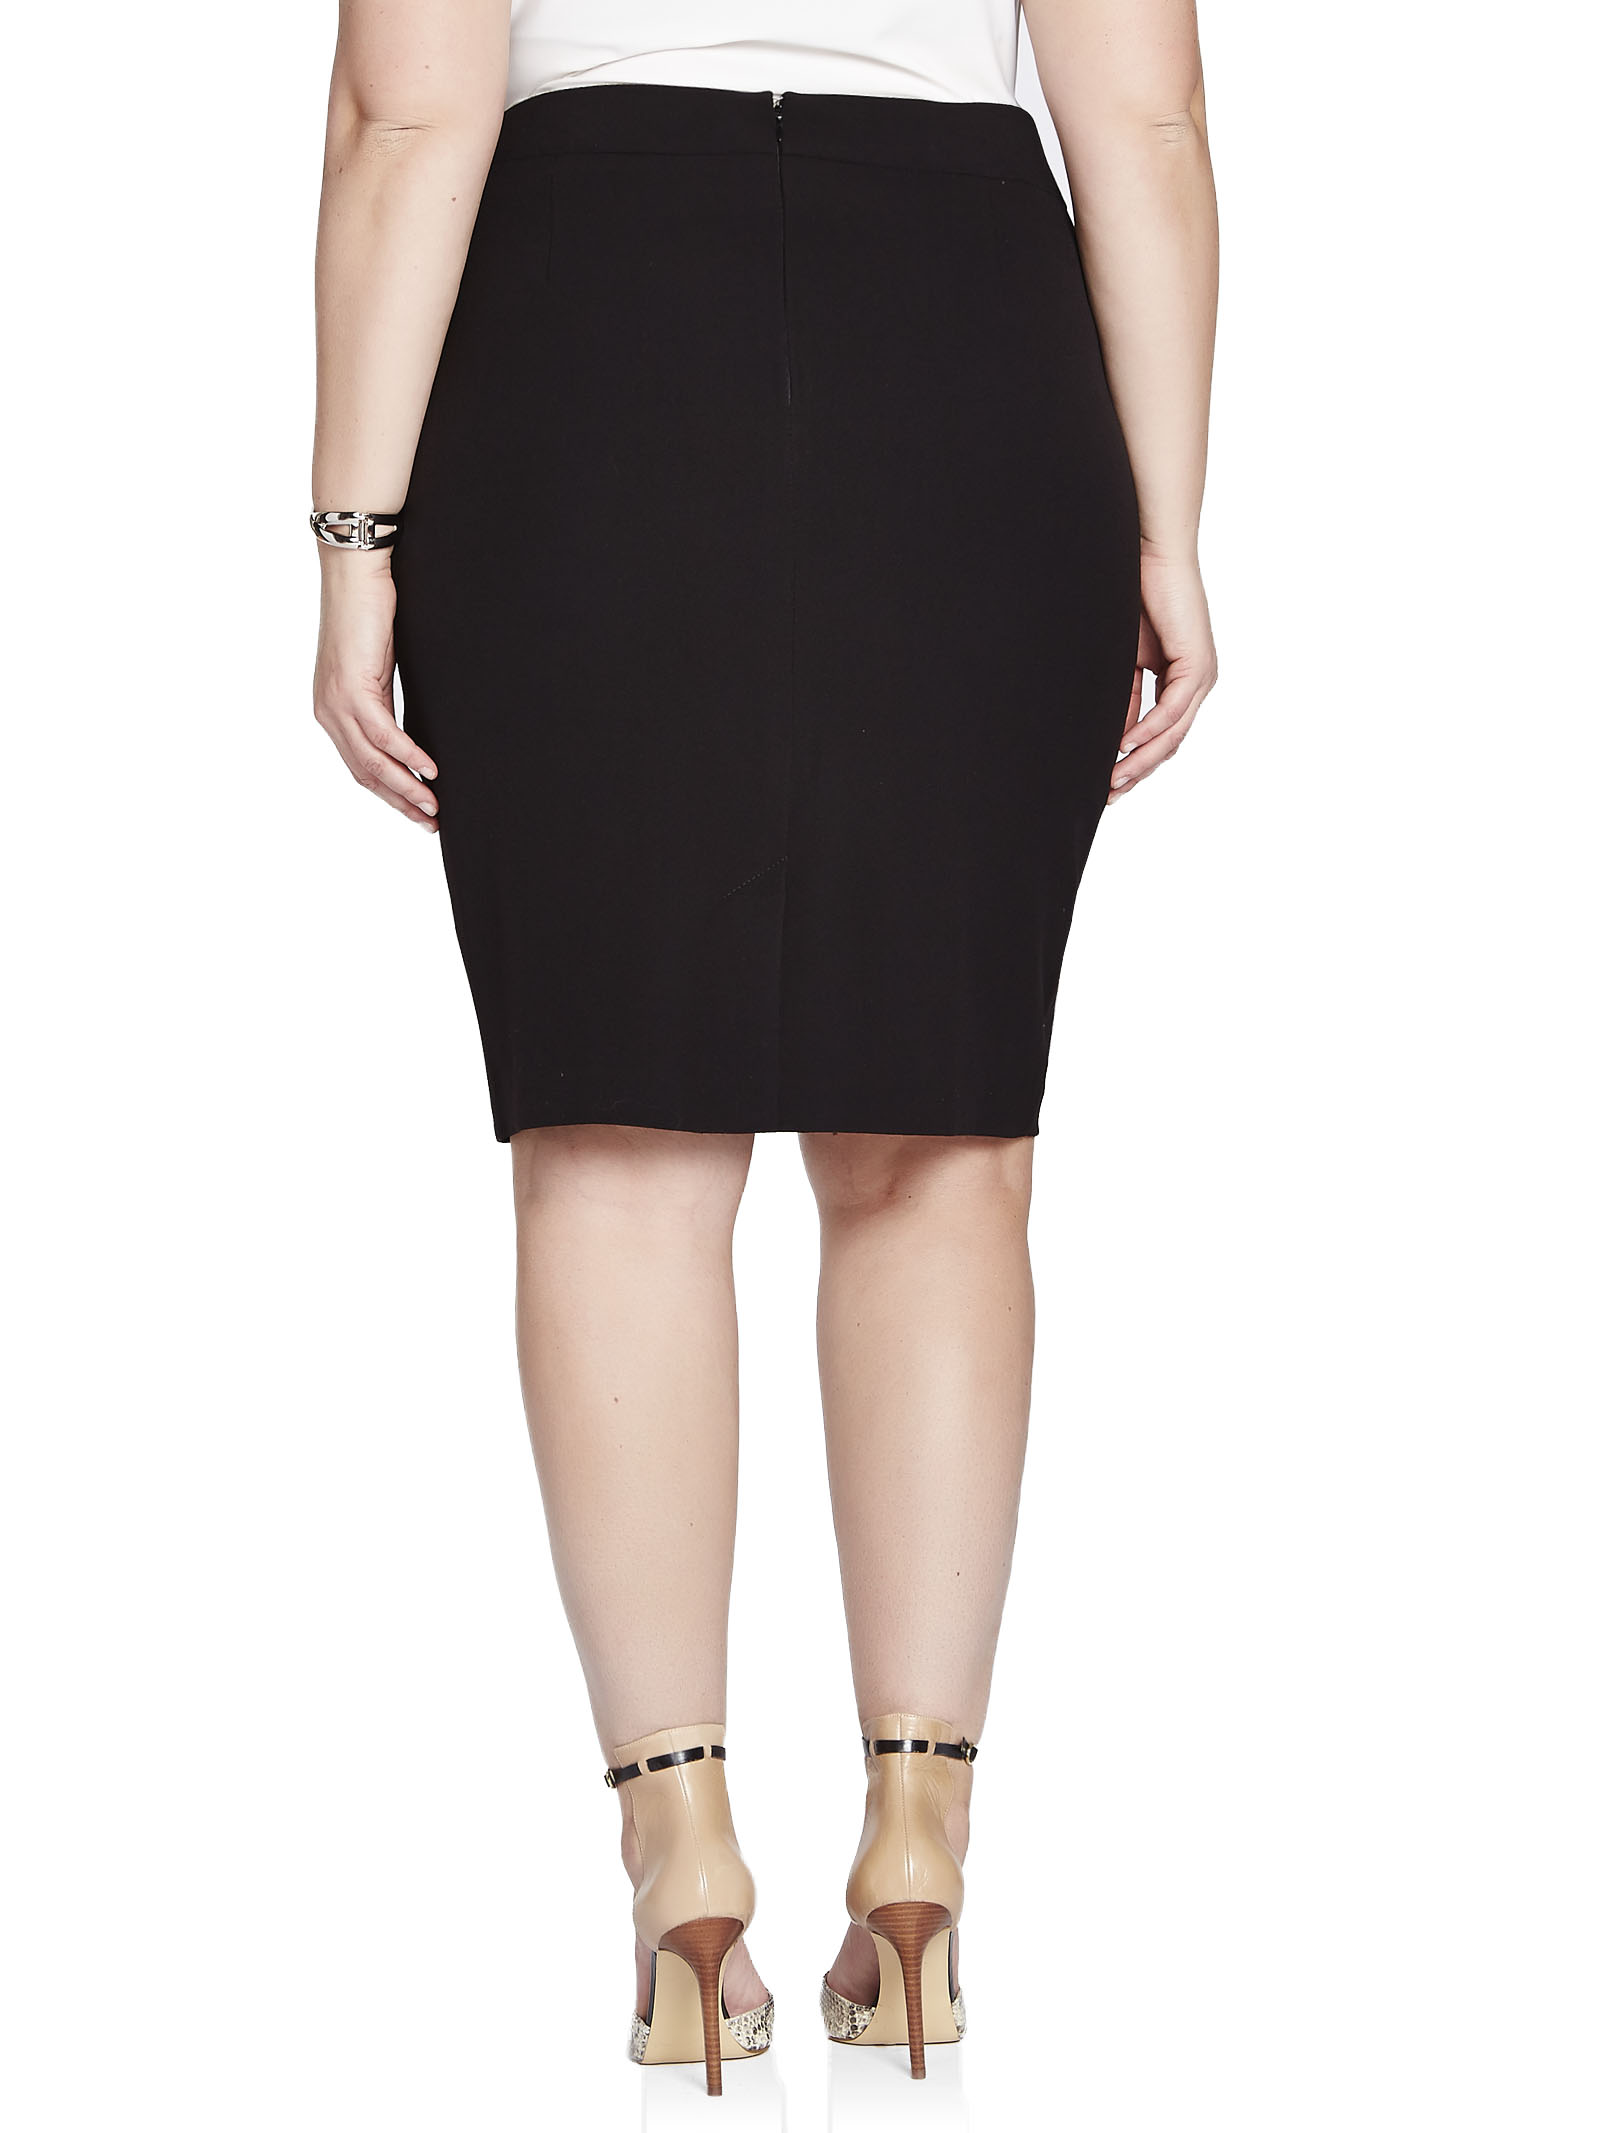 Banded Waist Pencil Skirt, Black, hi-res